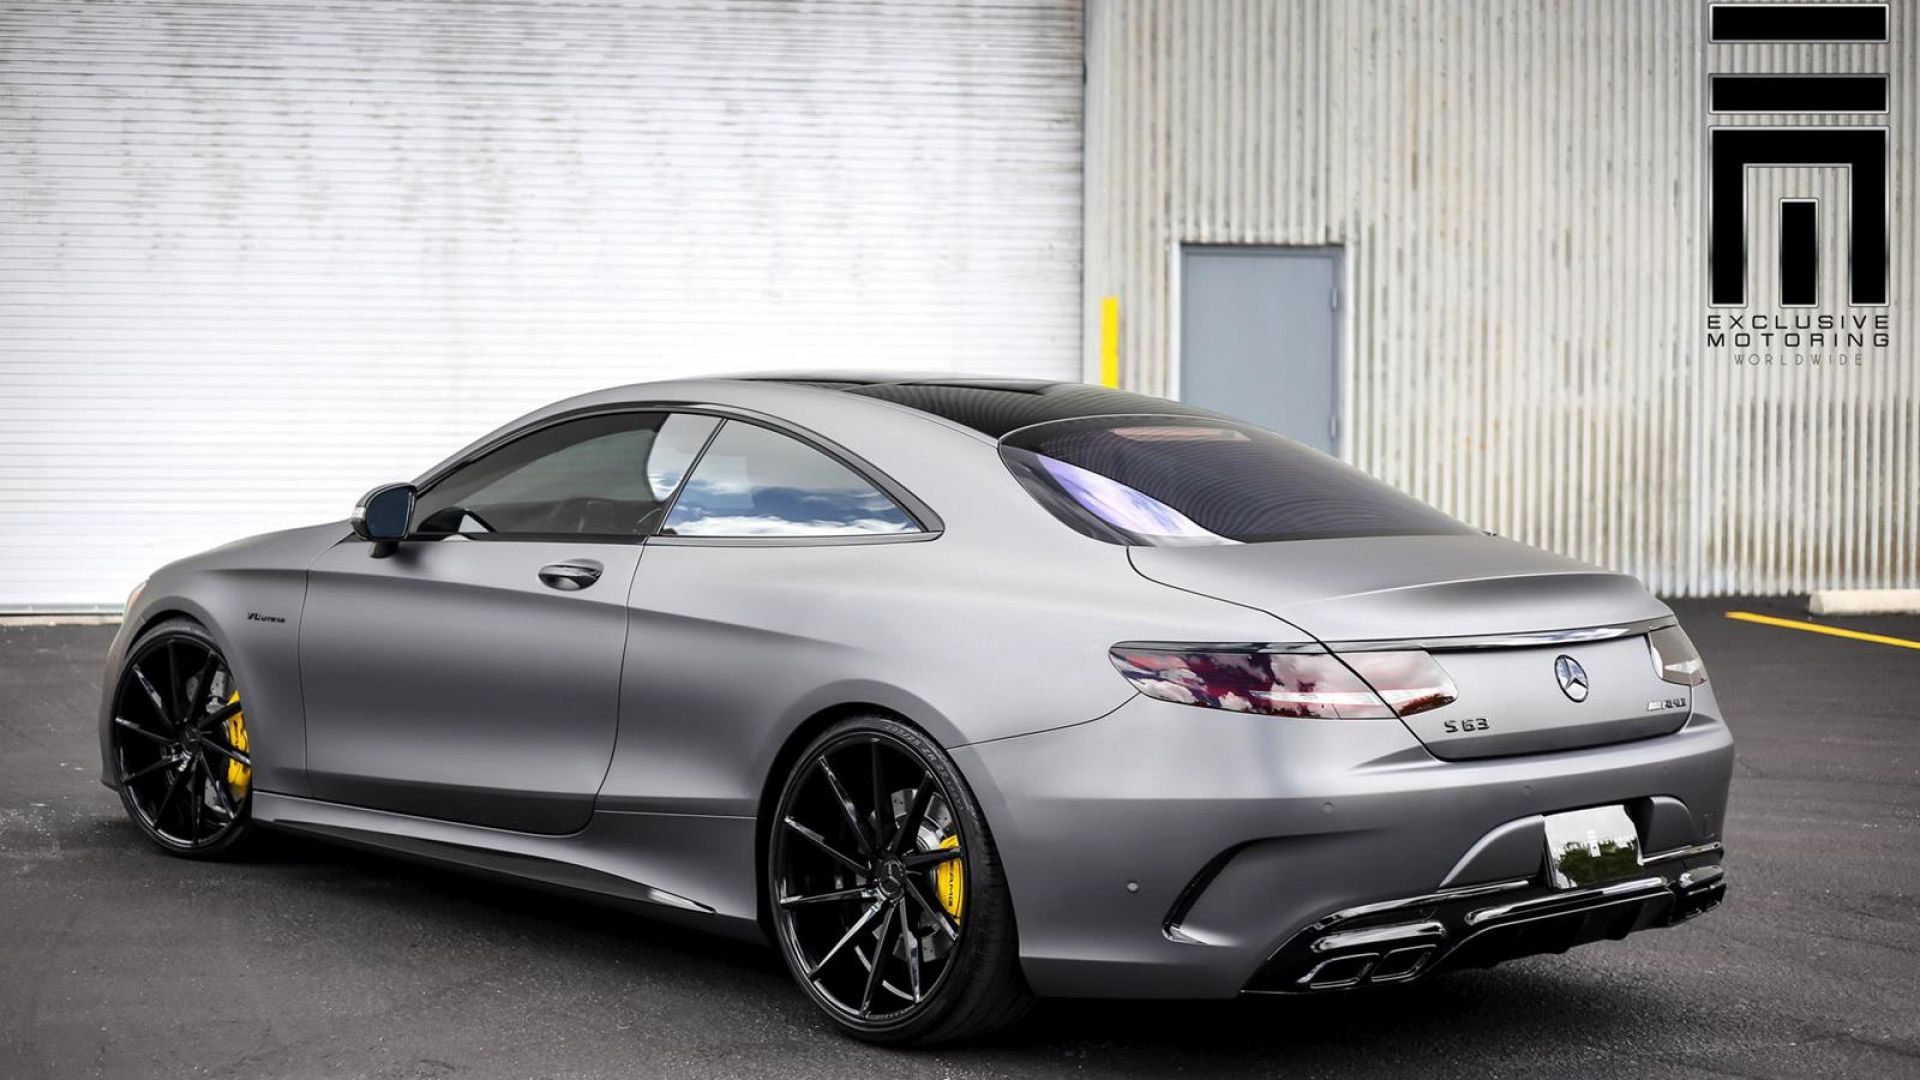 tuning: mercedes s coupéexclusive motoring - motorbox